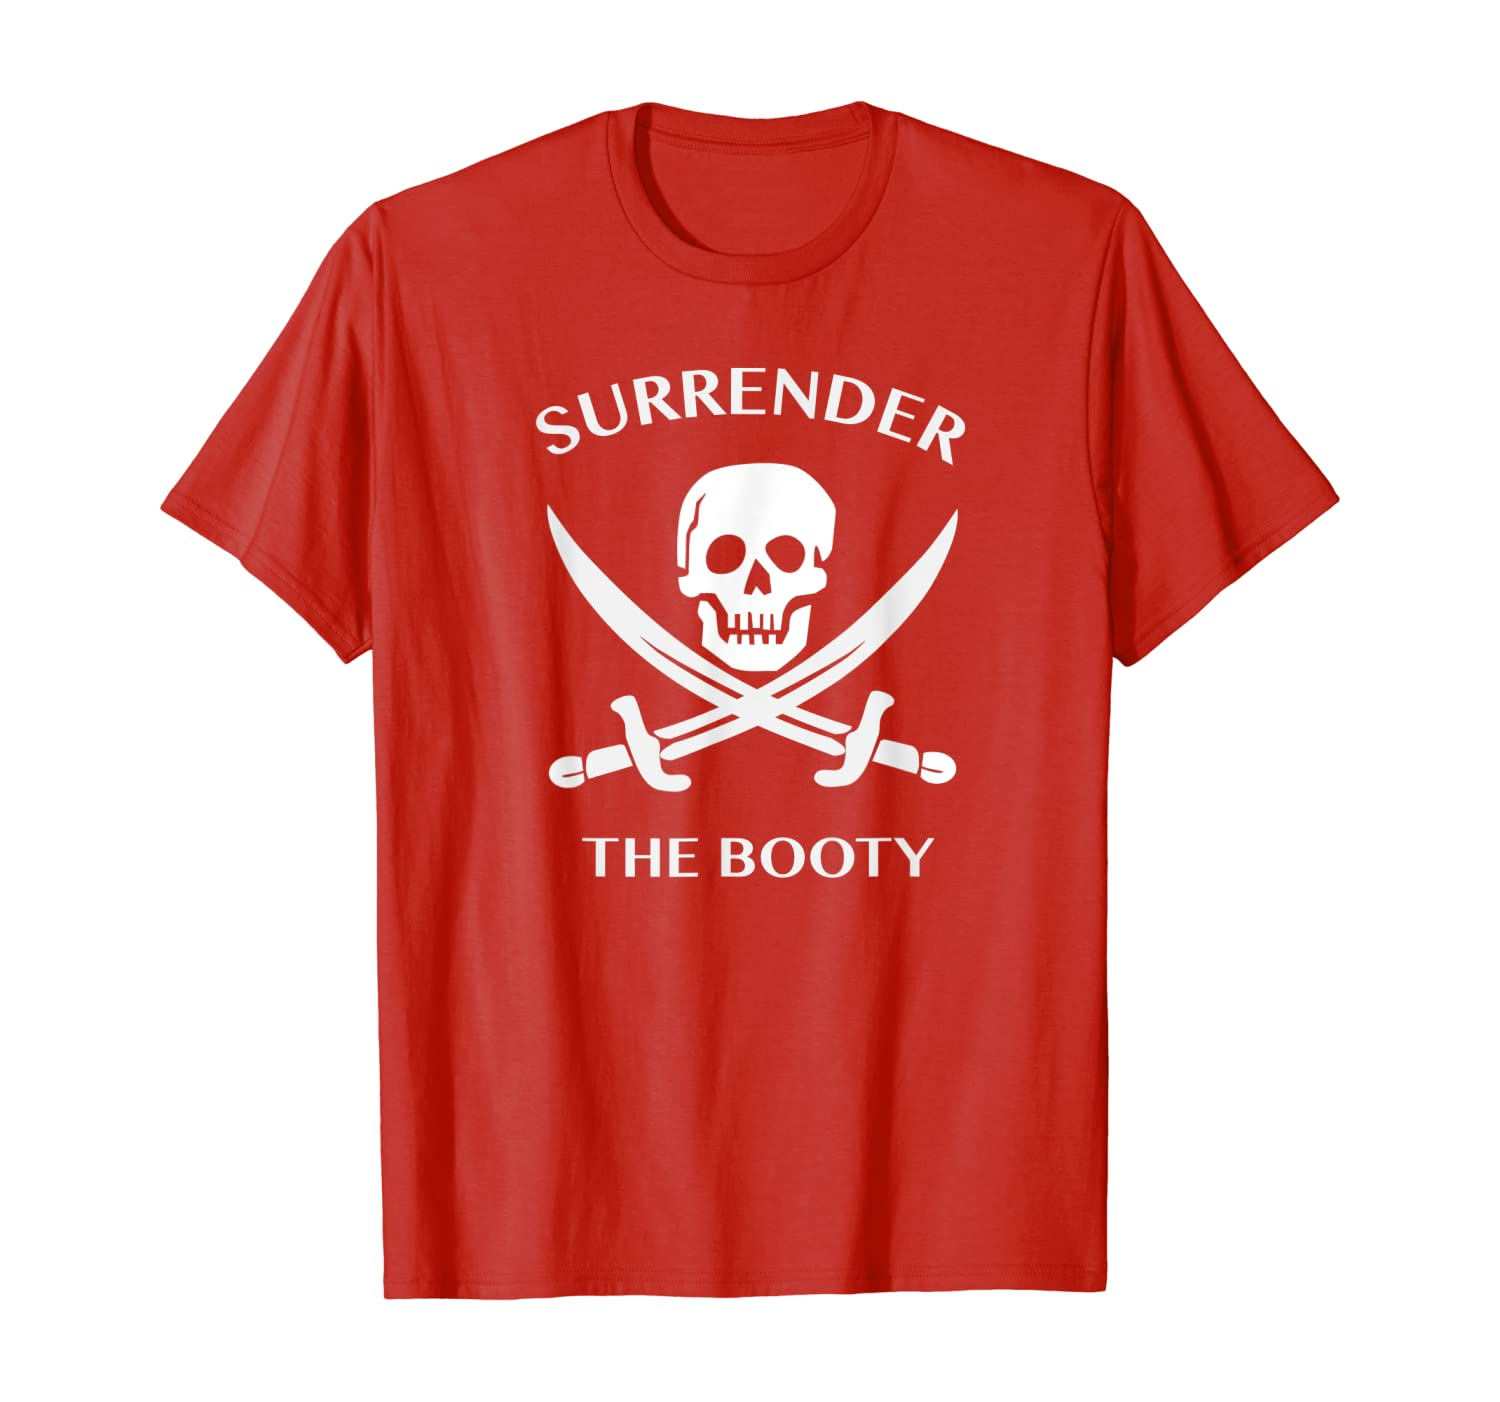 The Booty Adult Funny Pirate T-Shirt Tee